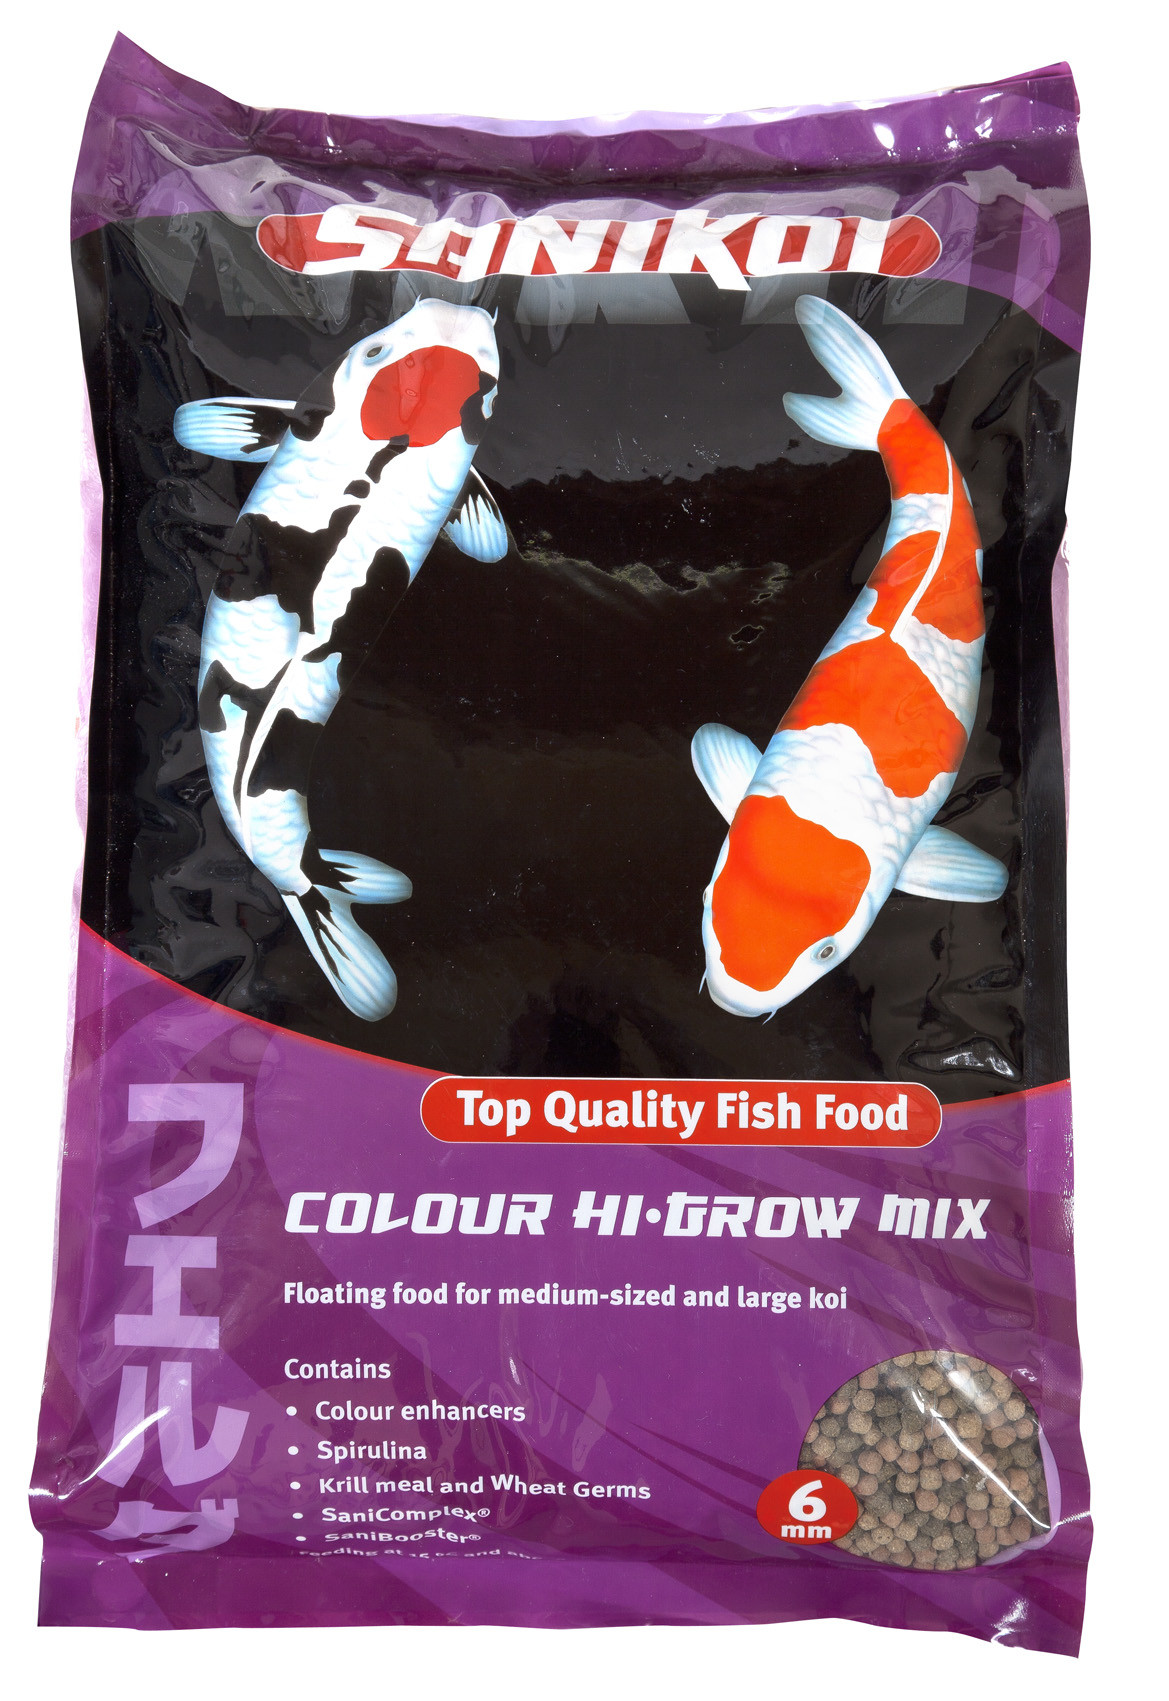 Sanikoi Colour Hi-Grow Mix 6 Mm 10 Liter